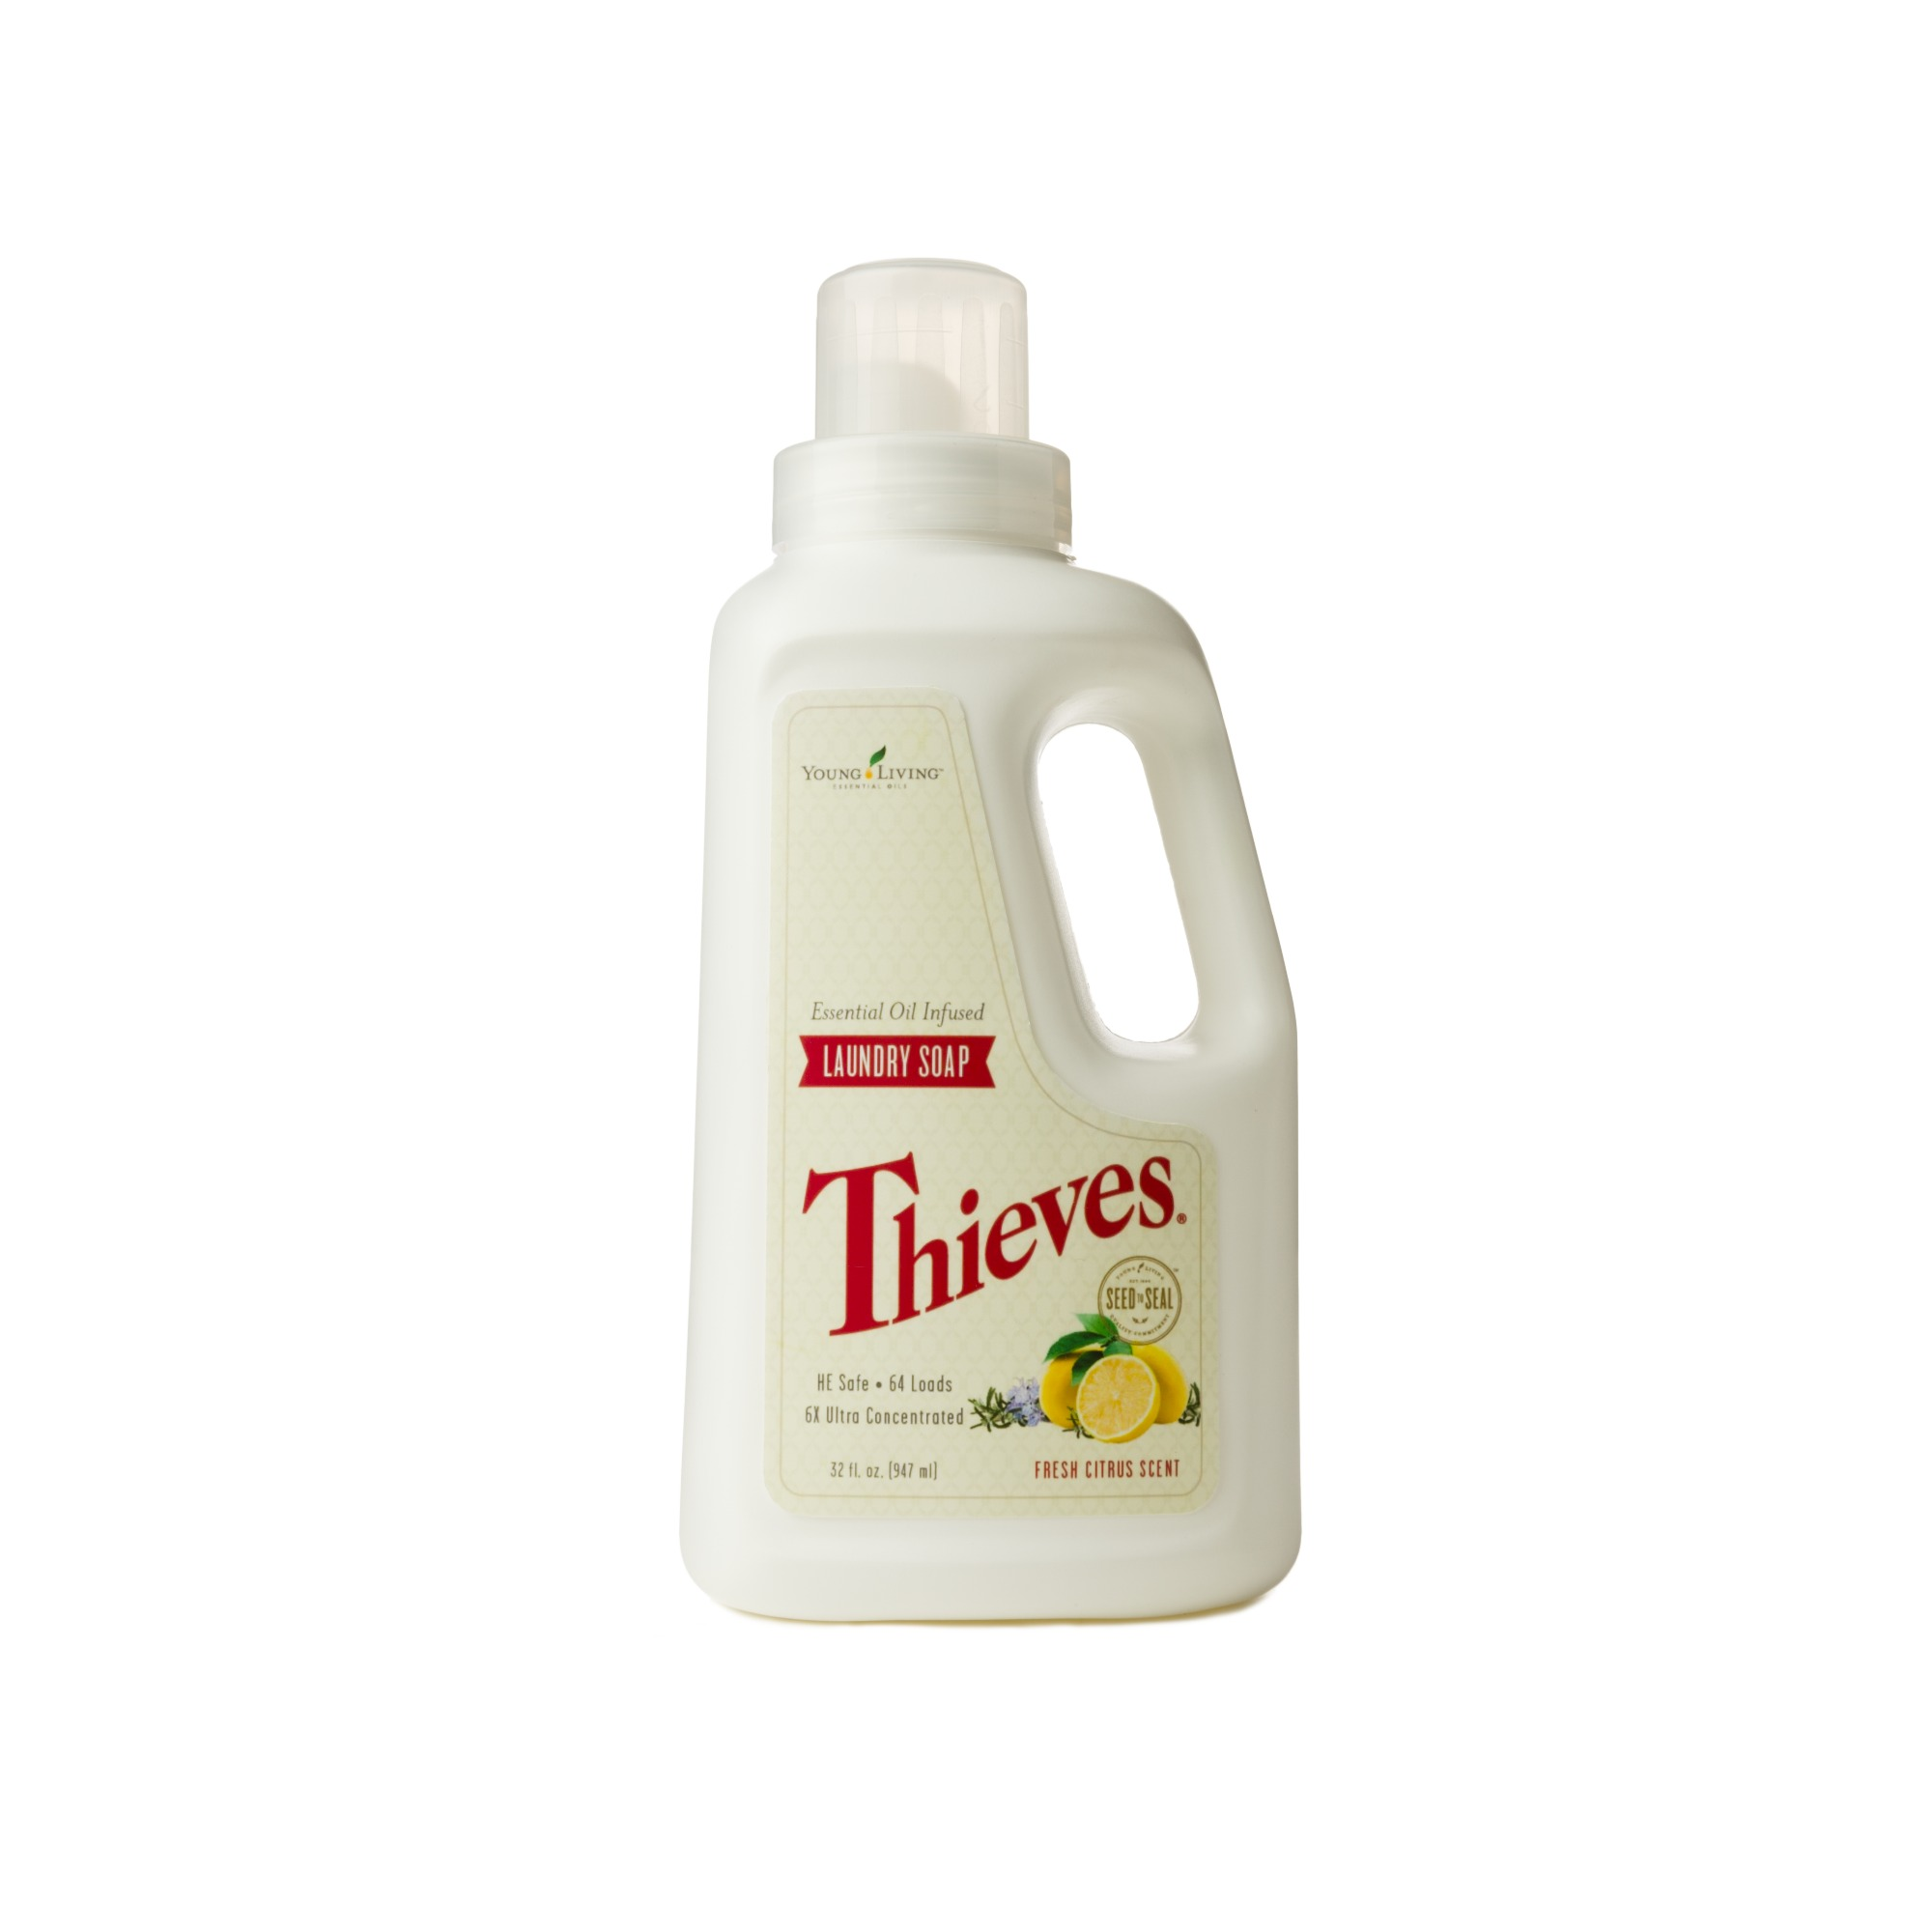 THIEVES LAUNDRY SOAP    Made up of plant-based ingredients and leaves no chemical or synthetic residue. Leaves clothes fresh and clean with a light citrus scent. Works in all types of washers, and can be used for up to 64 loads of laundry.   Click here   to read more extensively on this product.